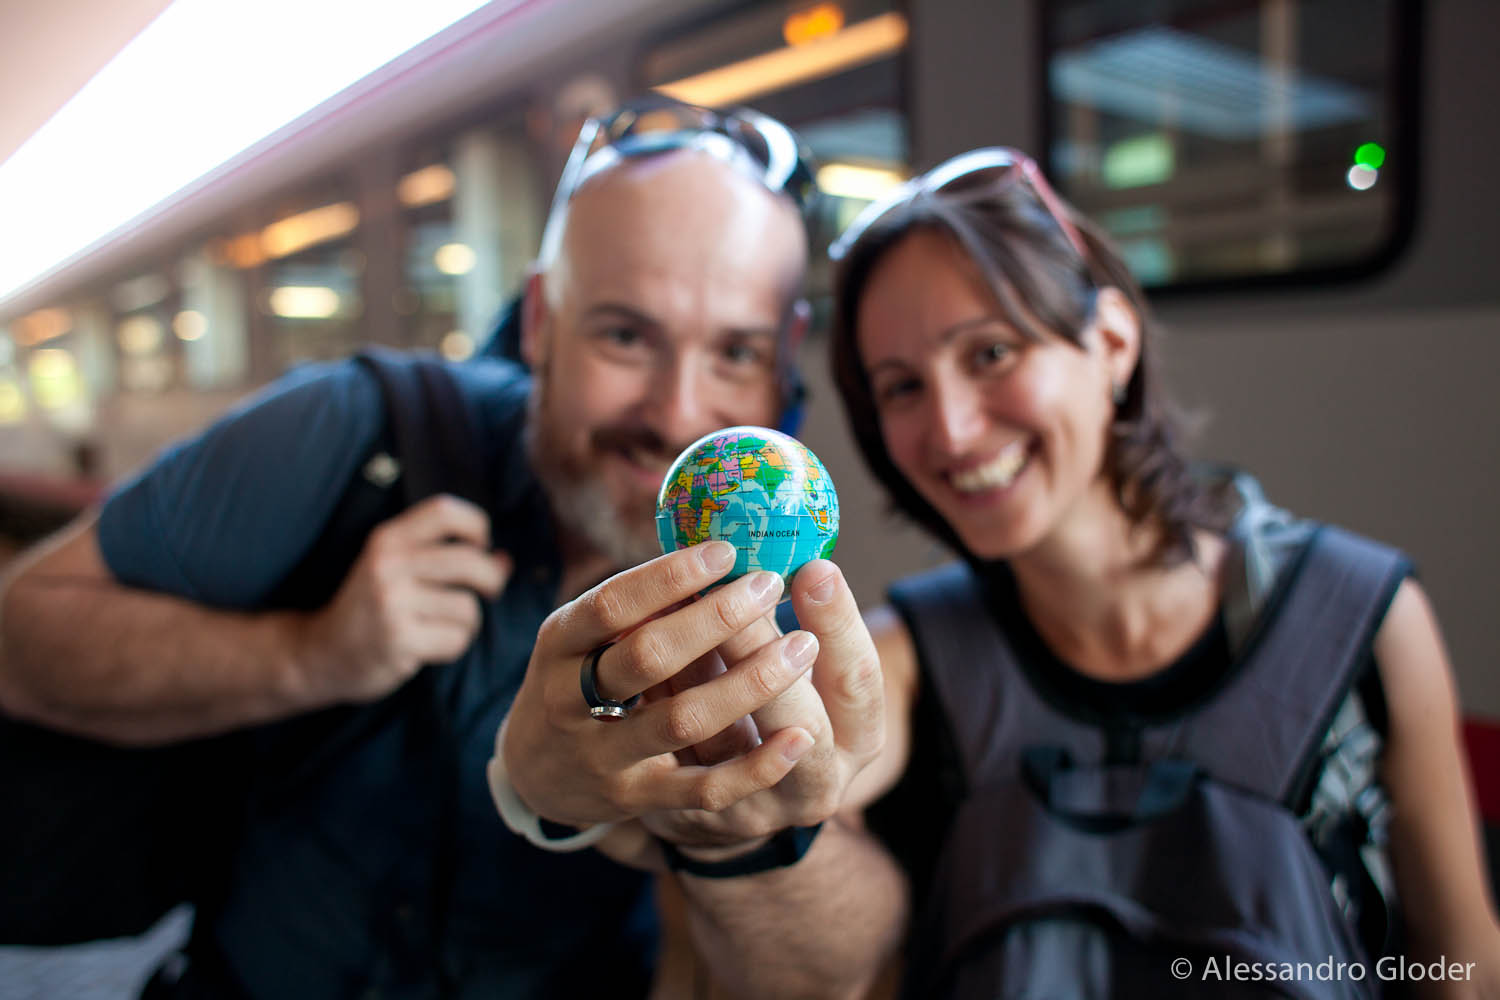 On the day of arrival, in Verona, Elisa  and Alessandro realized they had really made it crossing the world withouth catching any flight